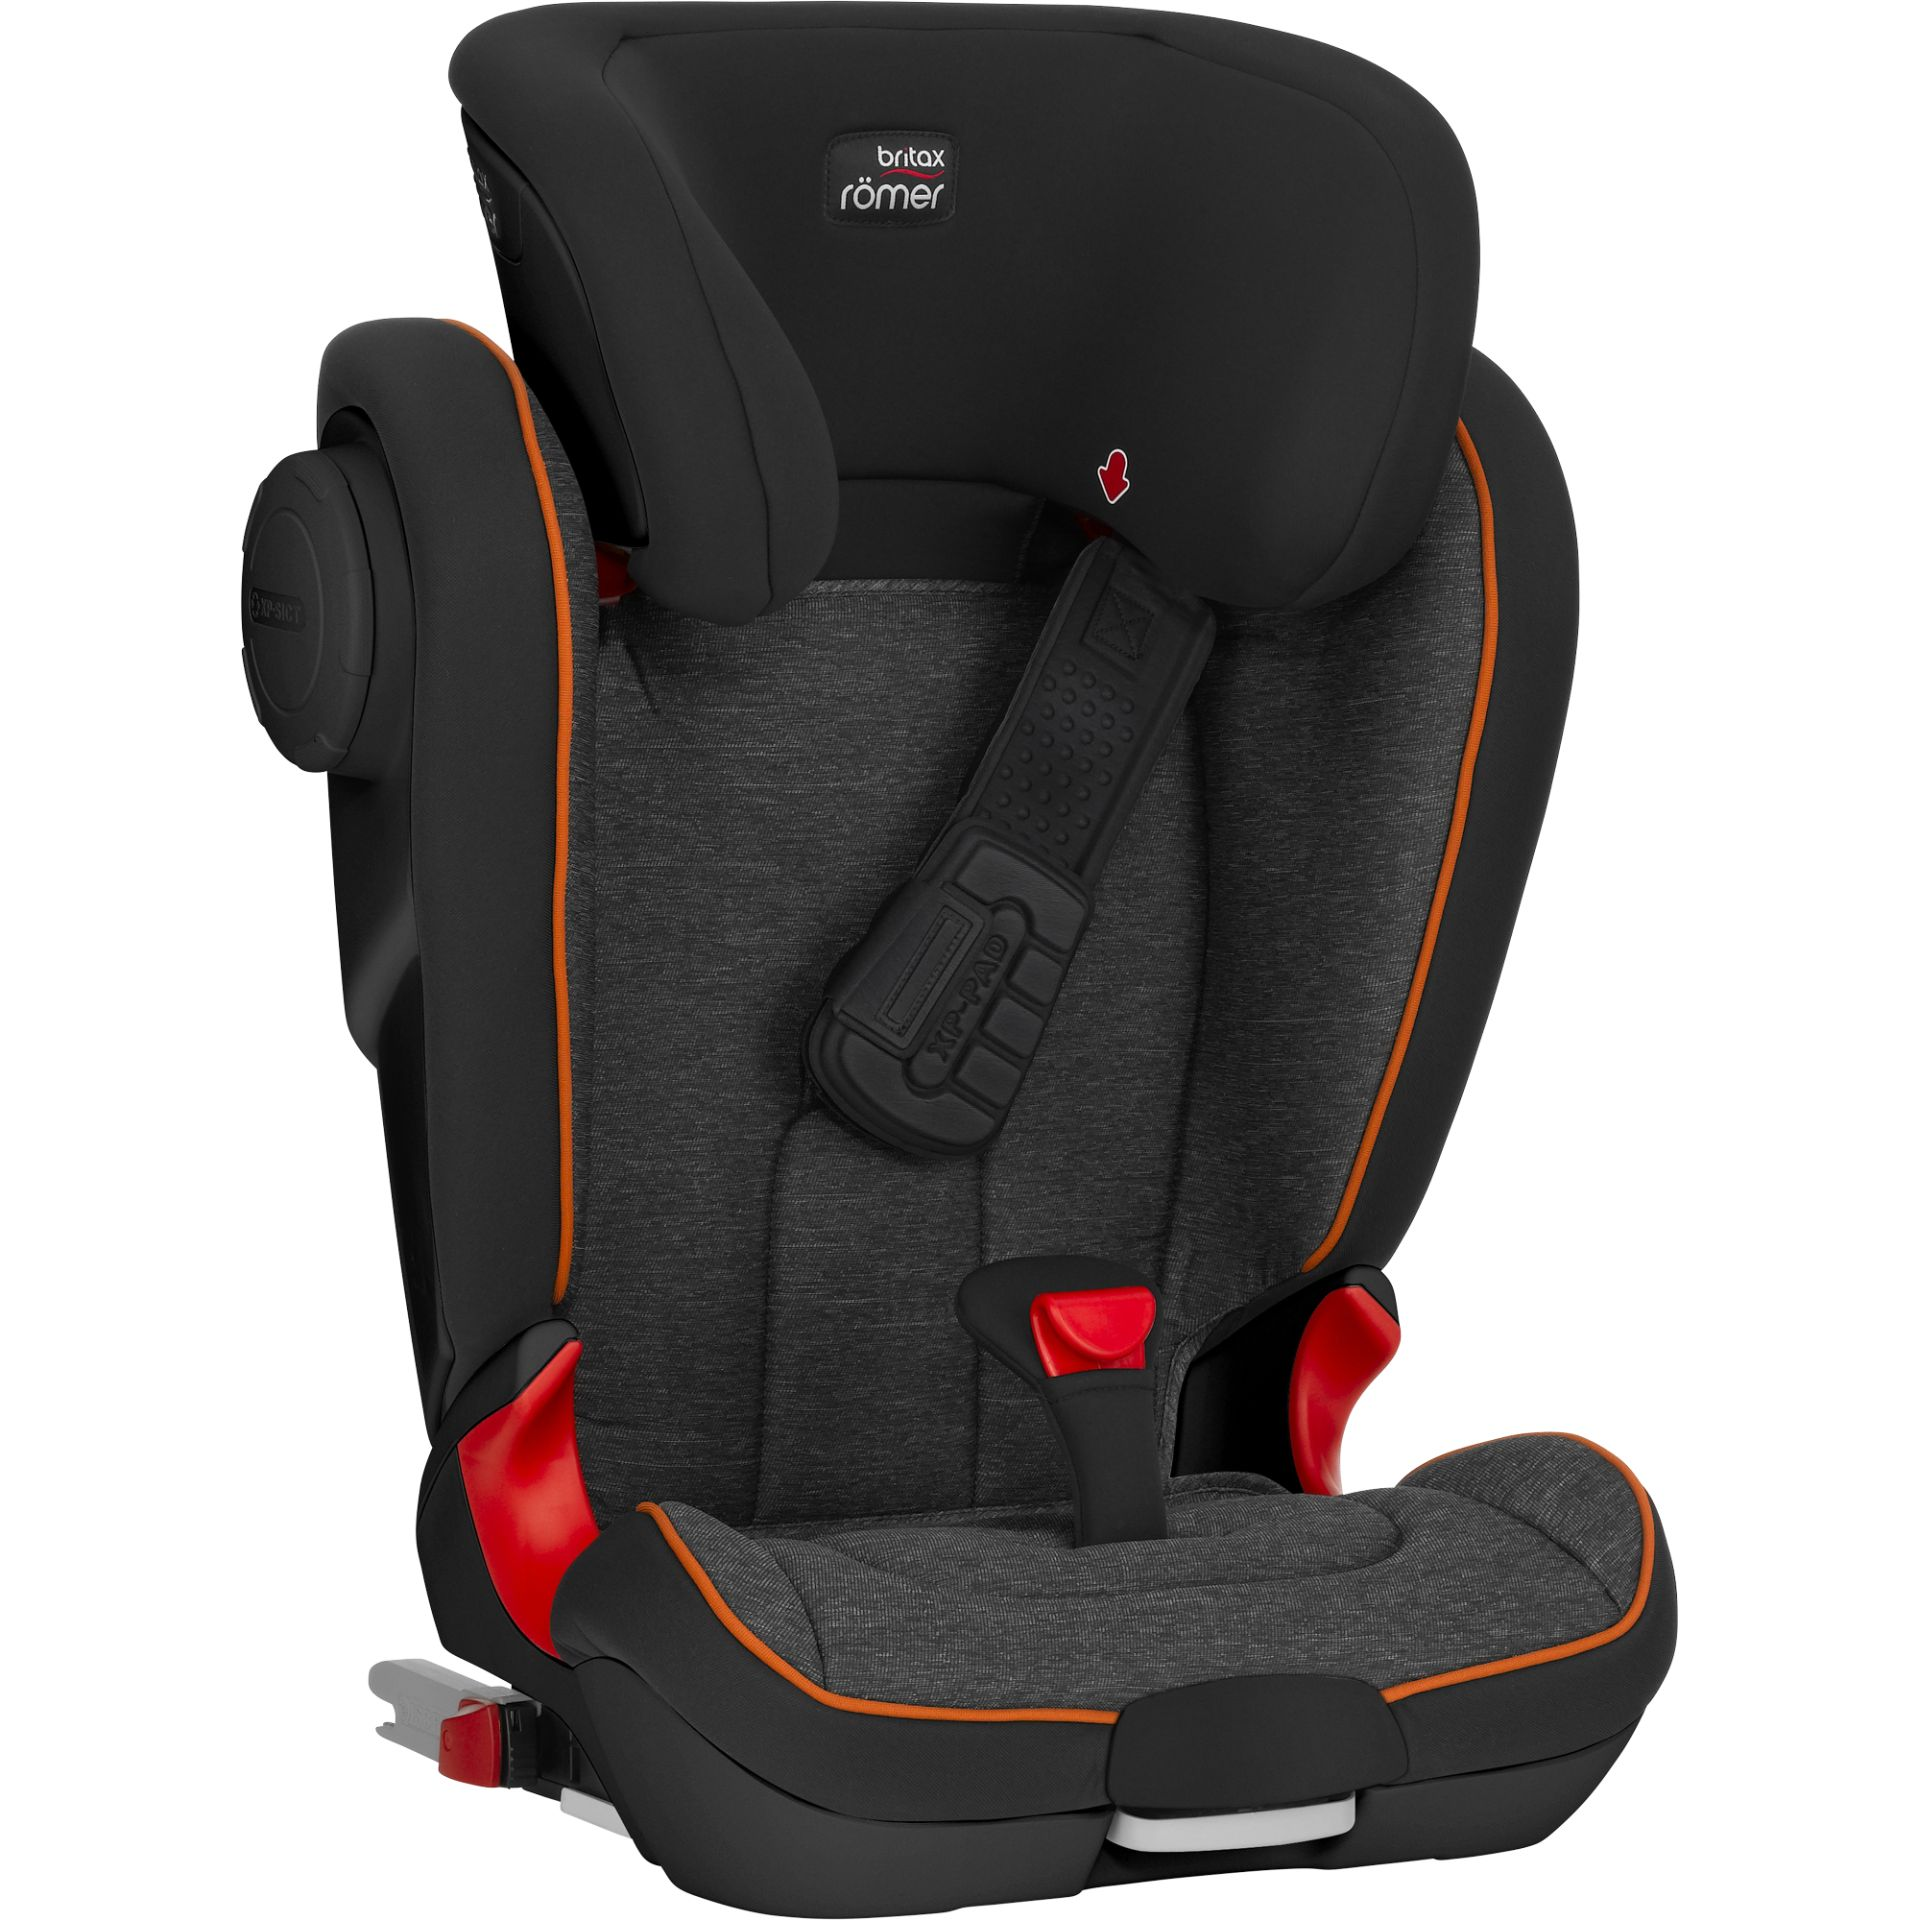 britax r mer child car seat kidfix ii xp sict black series 2018 black marble buy at kidsroom. Black Bedroom Furniture Sets. Home Design Ideas